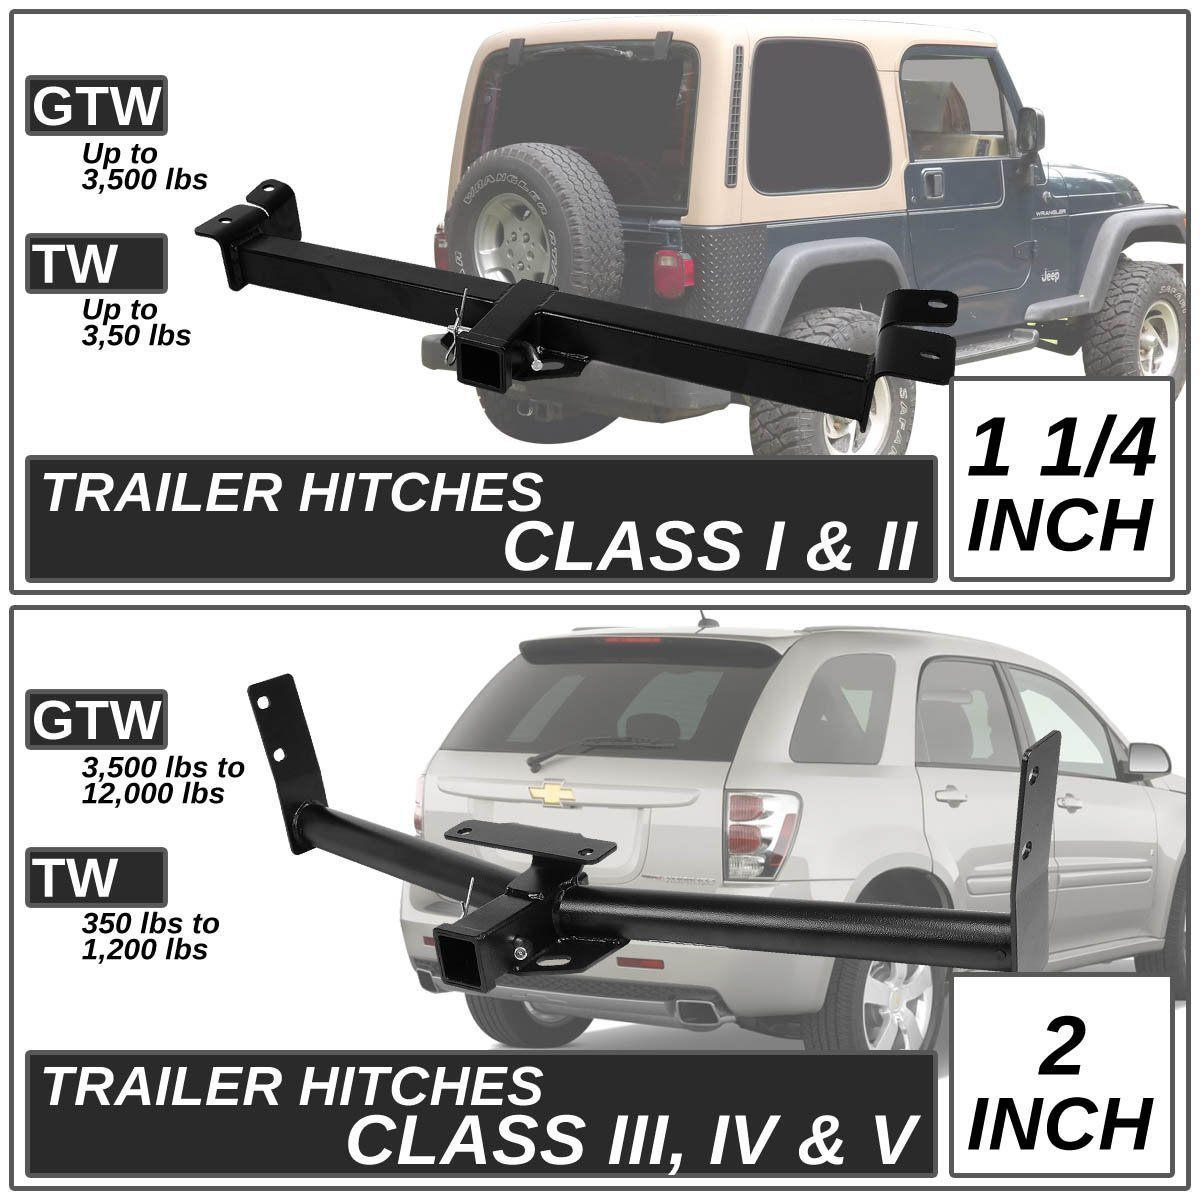 98-03 Dodge Durango Cl III Trailer Hitch Receiver Rear ... on